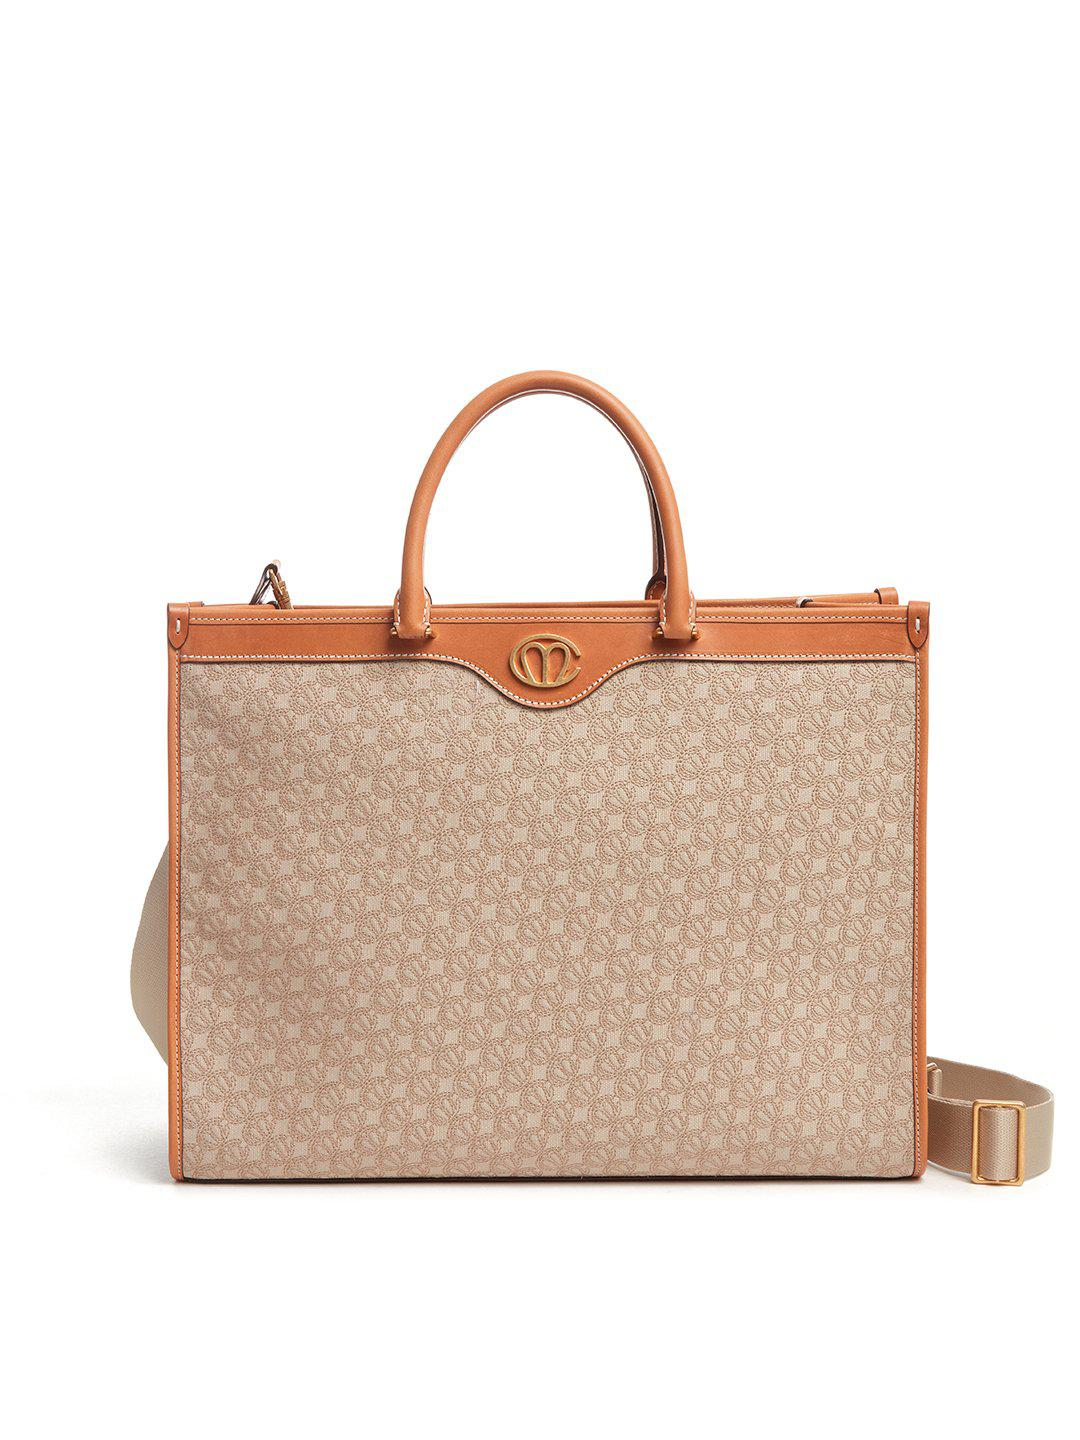 Christy East West MC Knot & Leather Tote Bag